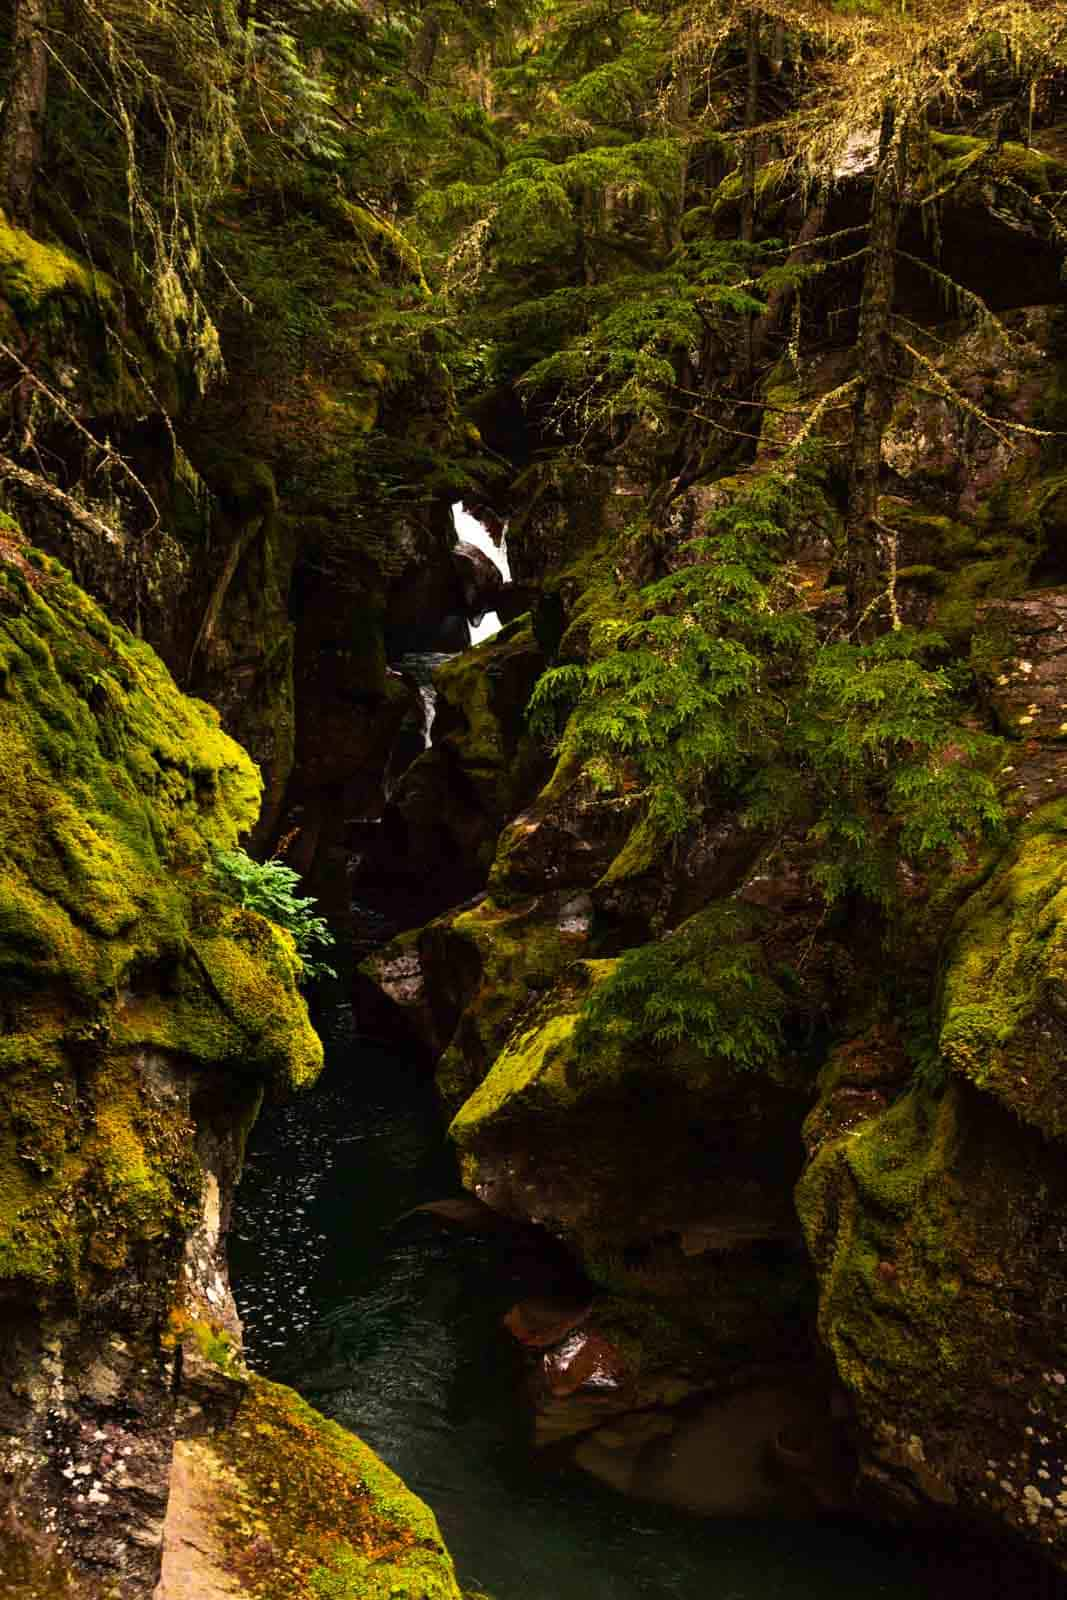 Avalanche Gorge and waterfalls on the way to best hikes in Glacier National Park